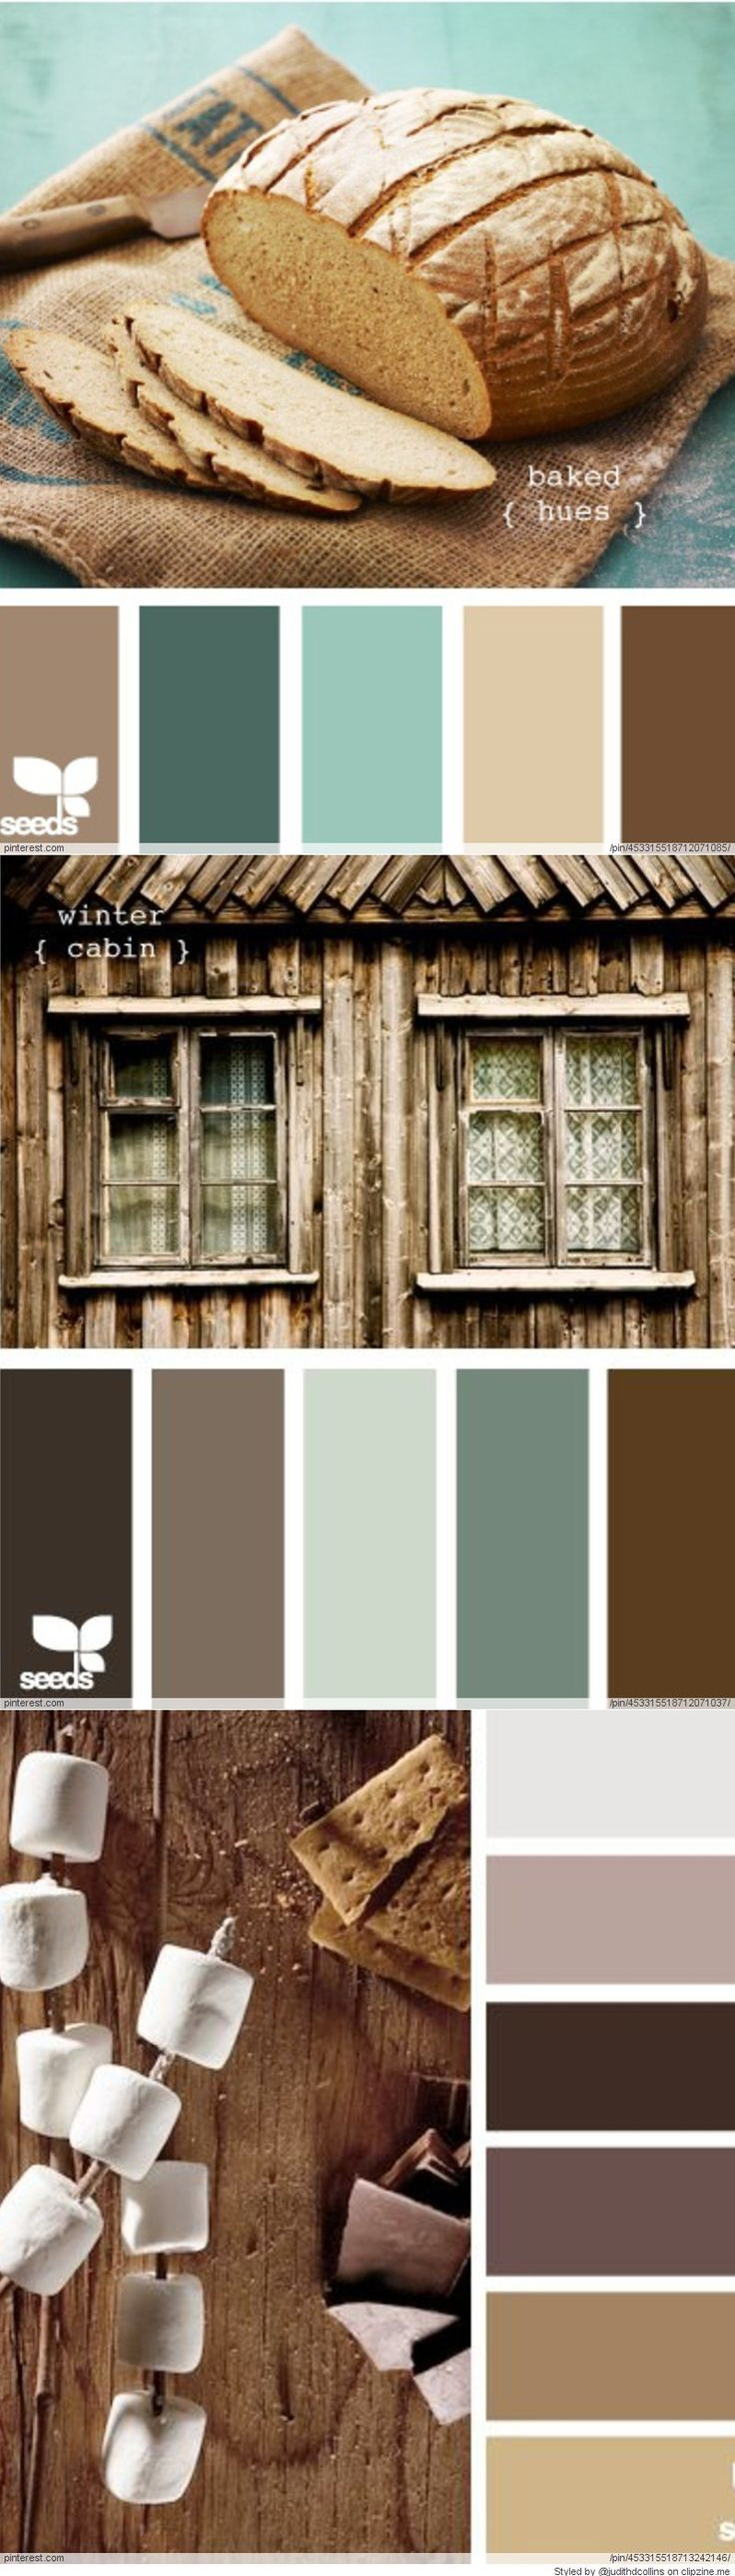 Best 25+ Rustic color schemes ideas on Pinterest | Rustic ...